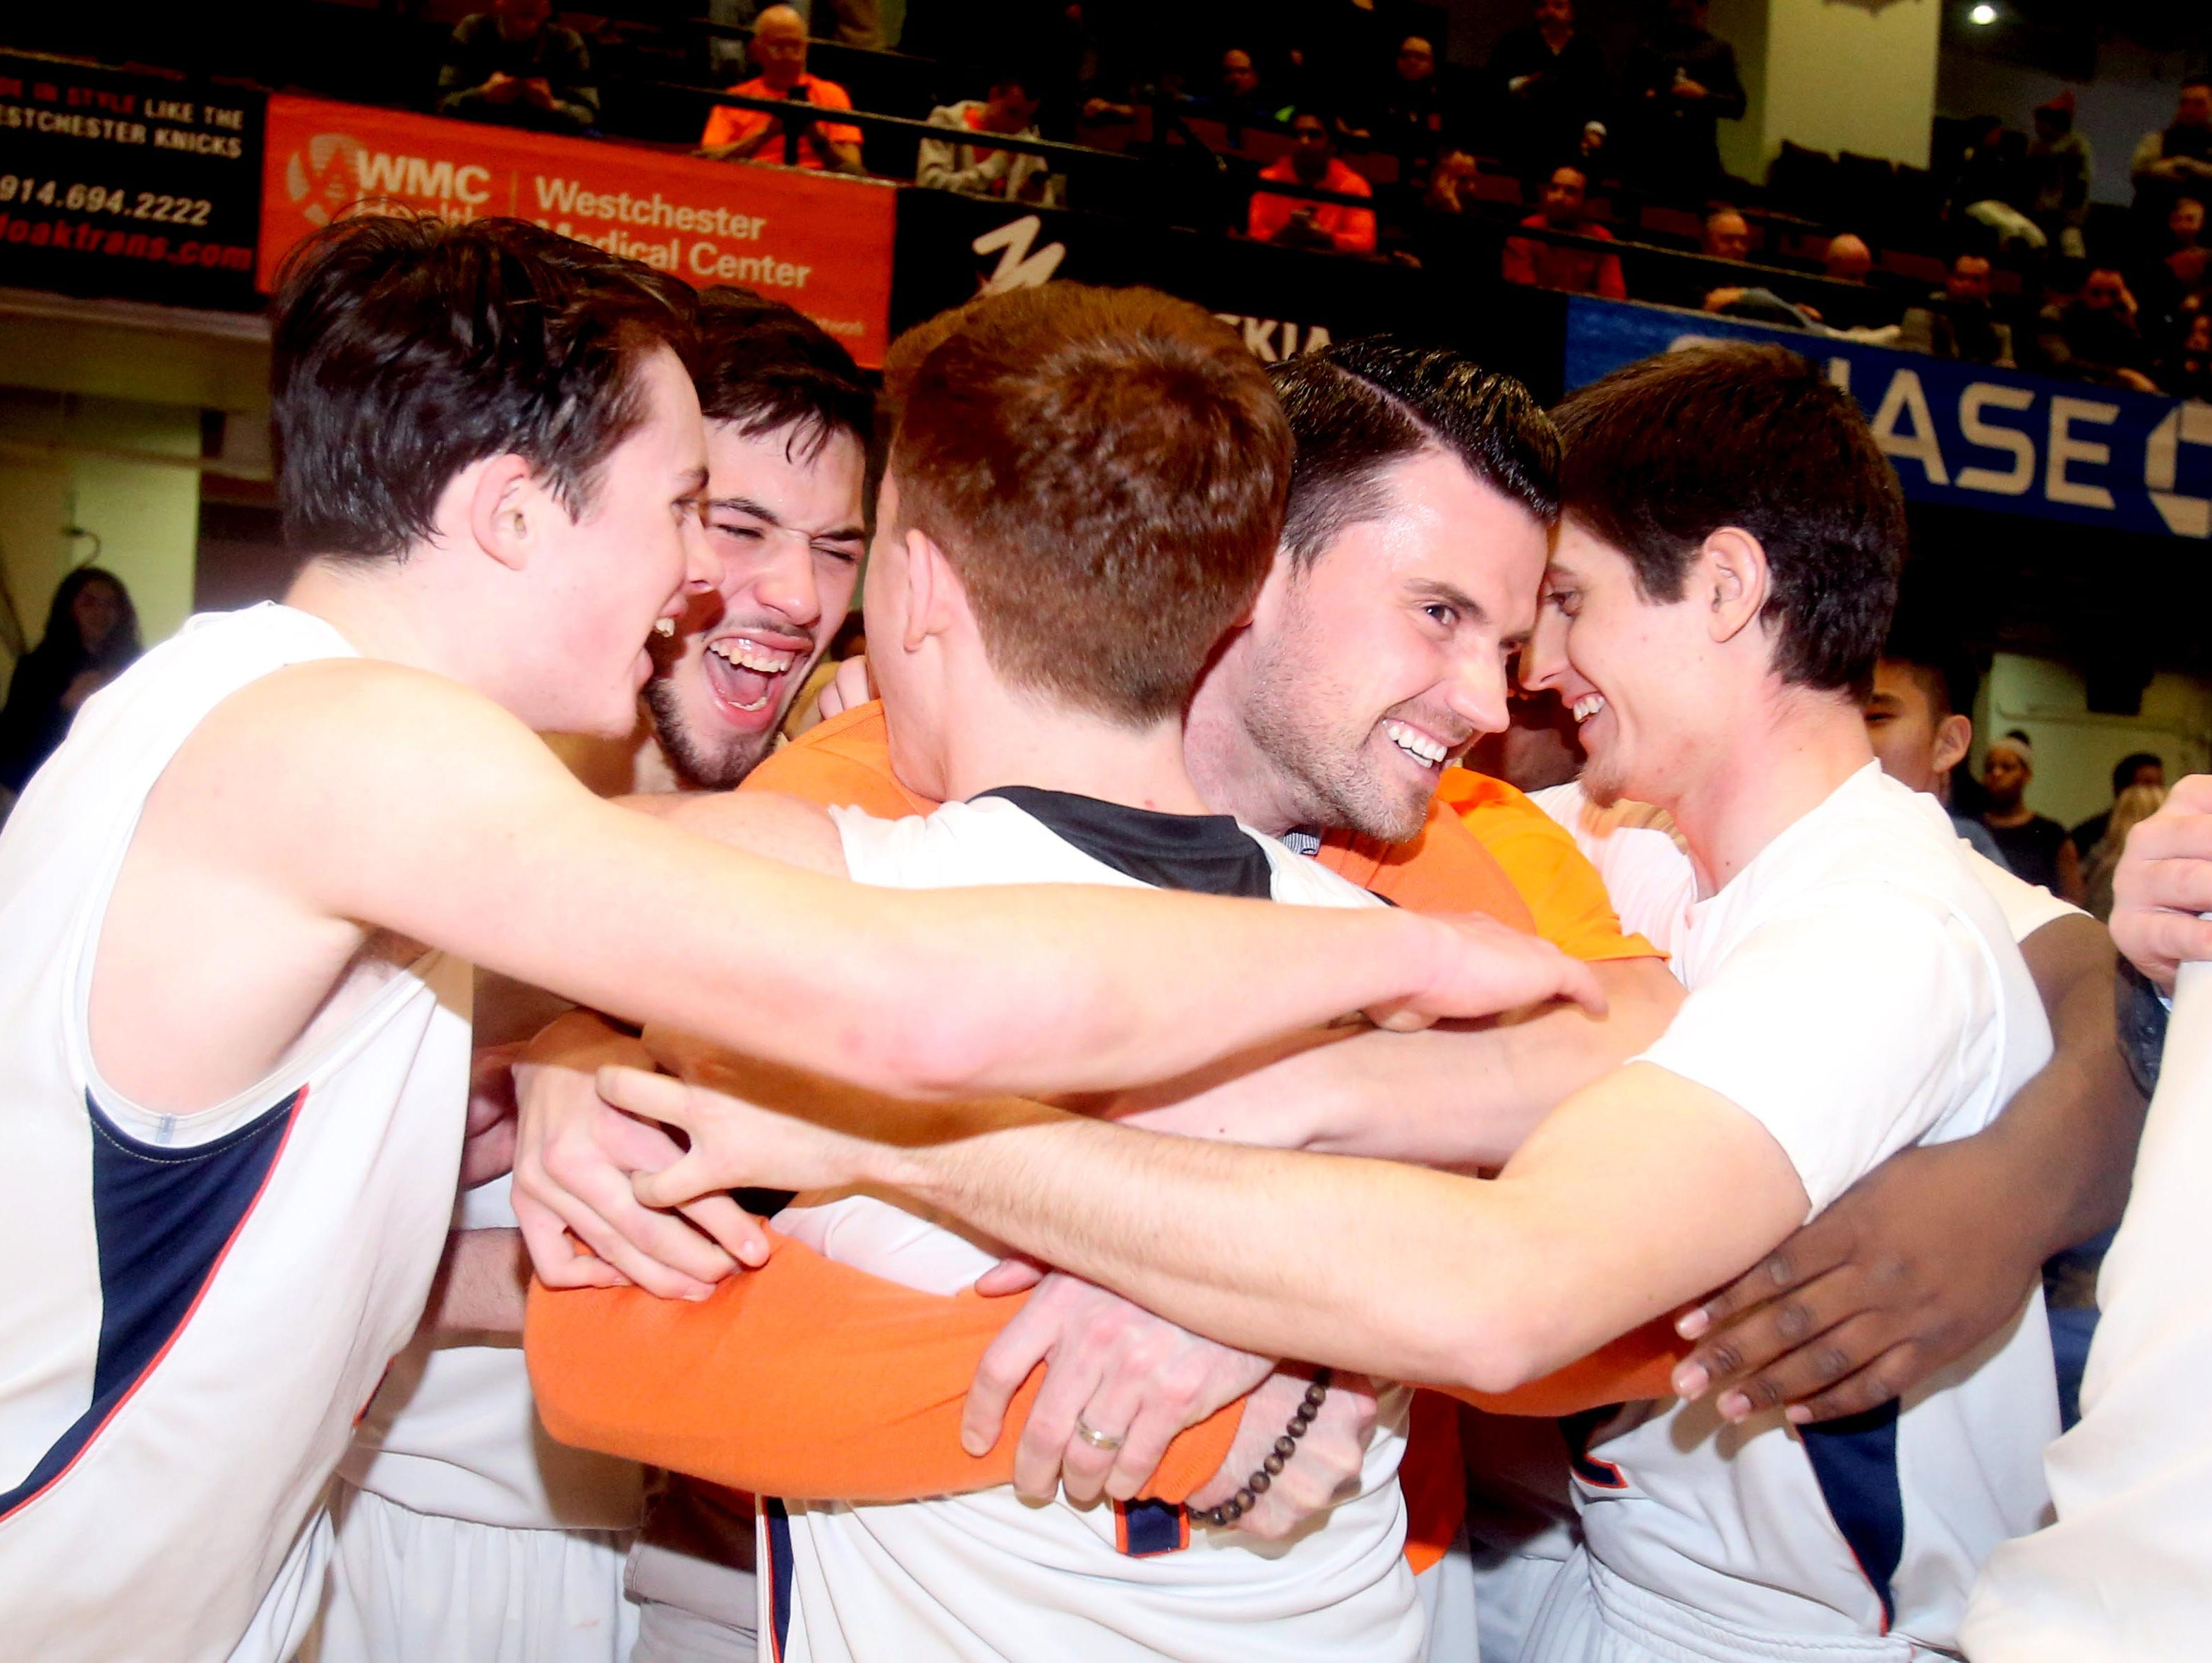 Briarcliff celebrates after defeating Putnam Valley 53-42 to win the Section 1 Class B basketball championship at the Westchester County Center in White Plains Feb. 27, 2016.